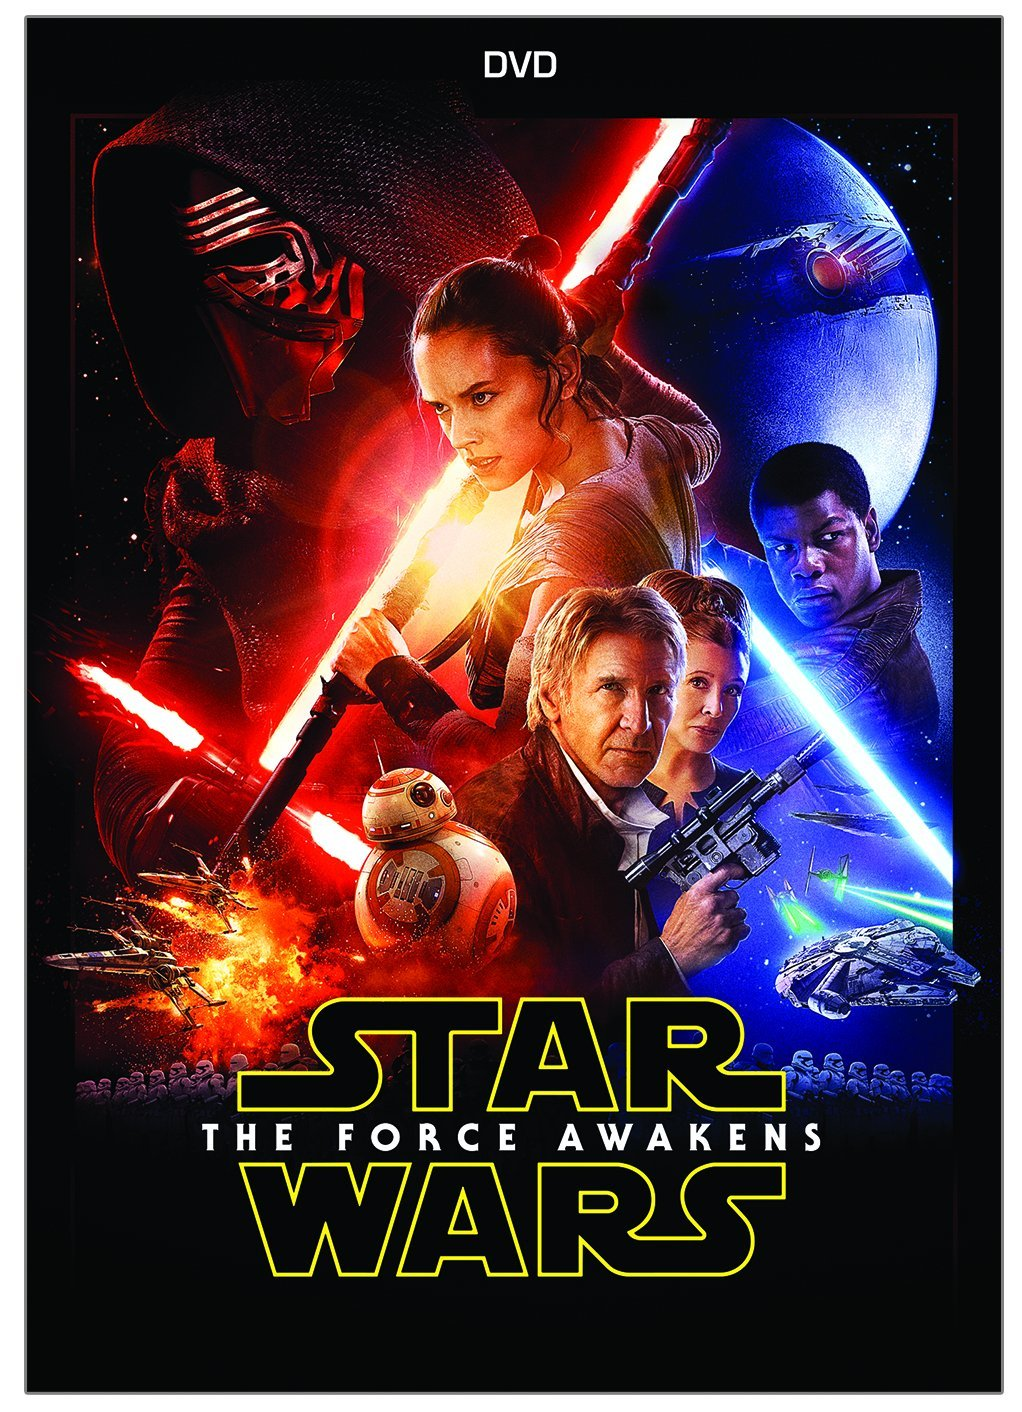 Star Wars : The Force Awakens, un film de paresseux ?